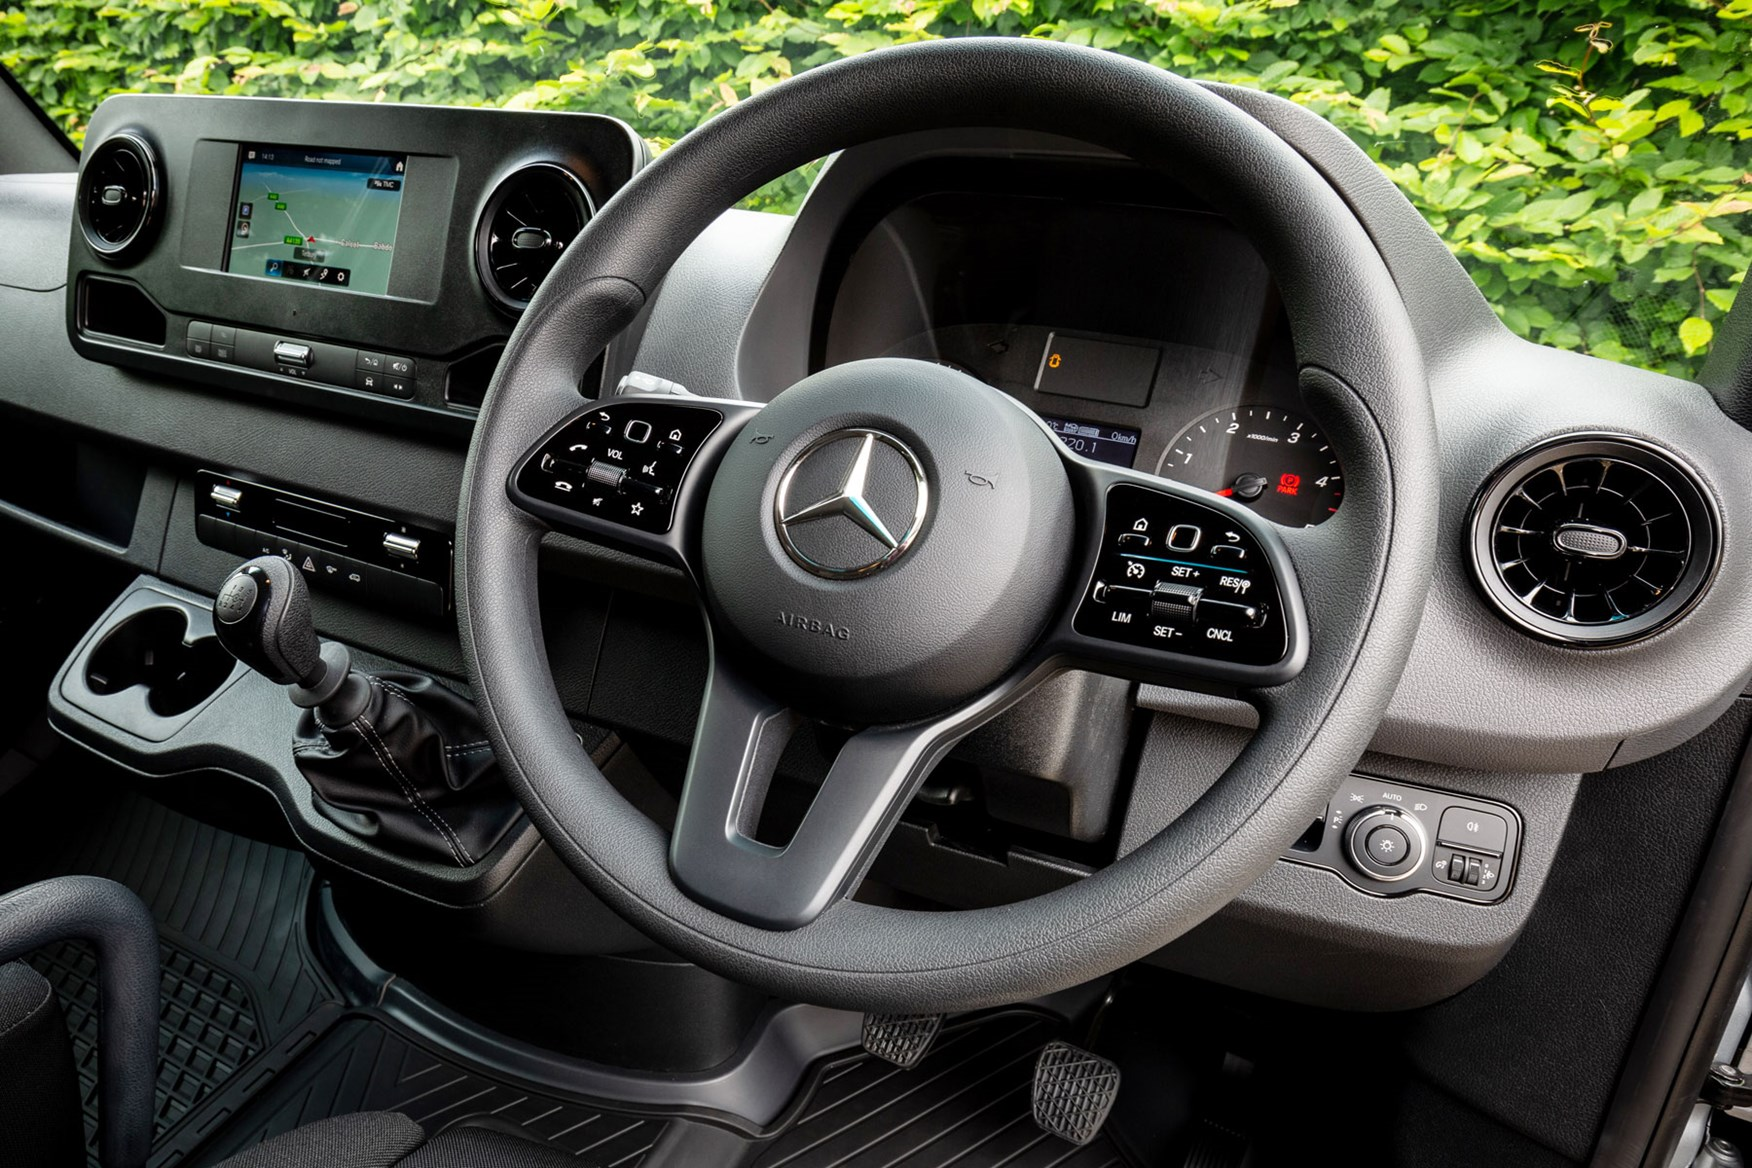 Mercedes Sprinter (2018-on), cab interior UK right-hand drive steering wheel close up